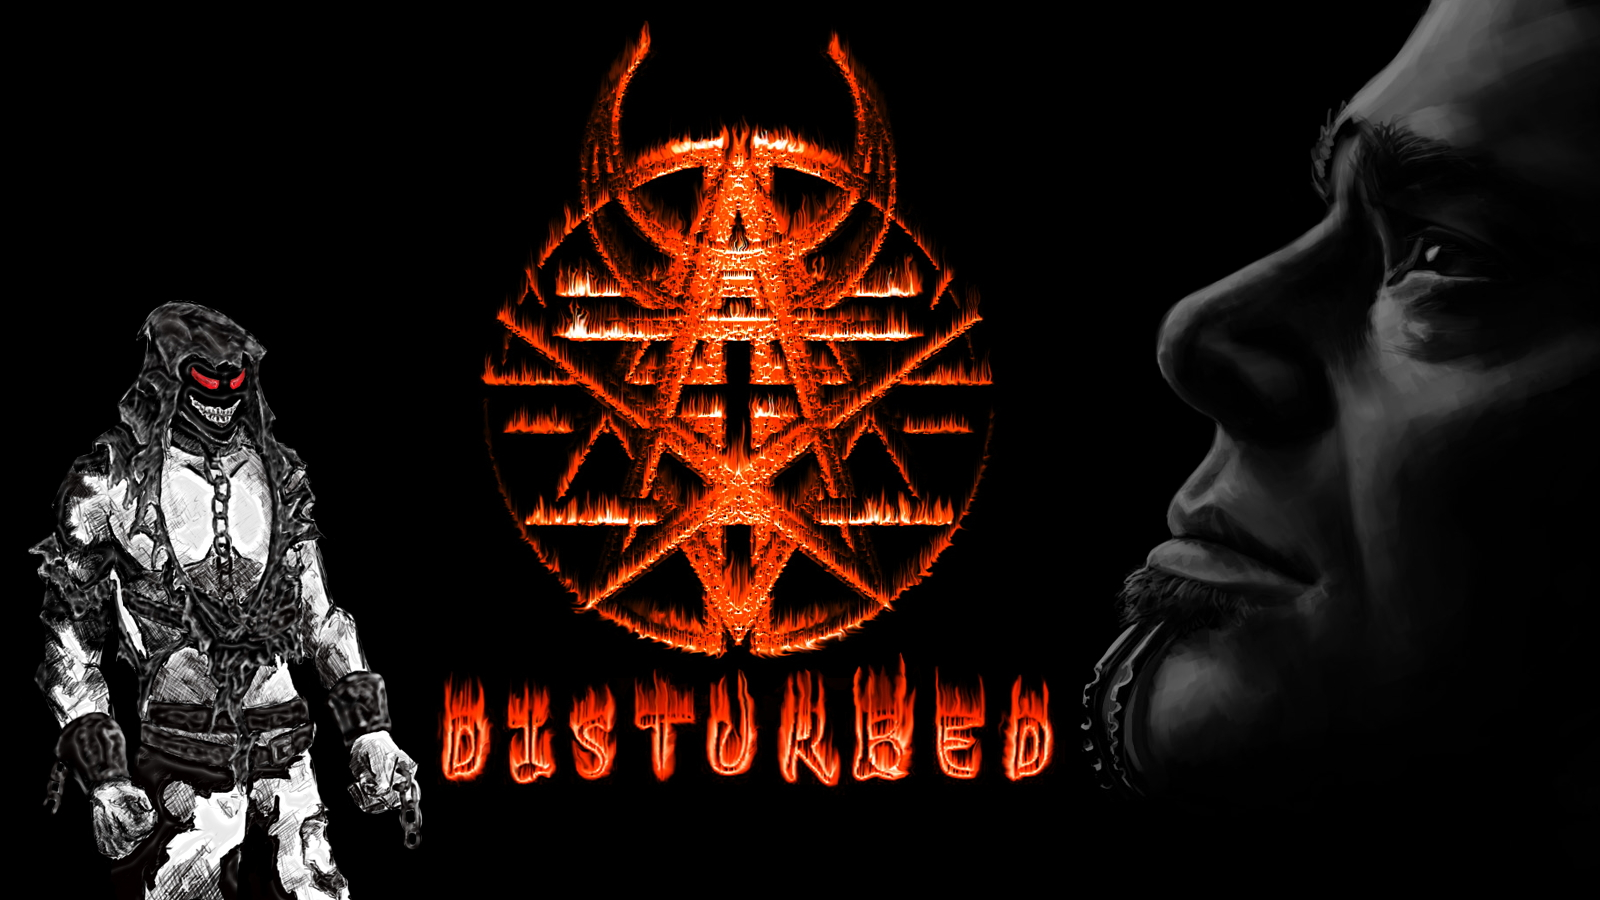 Disturbed Computer Wallpapers Desktop Backgrounds 1600x900 ID 1600x900